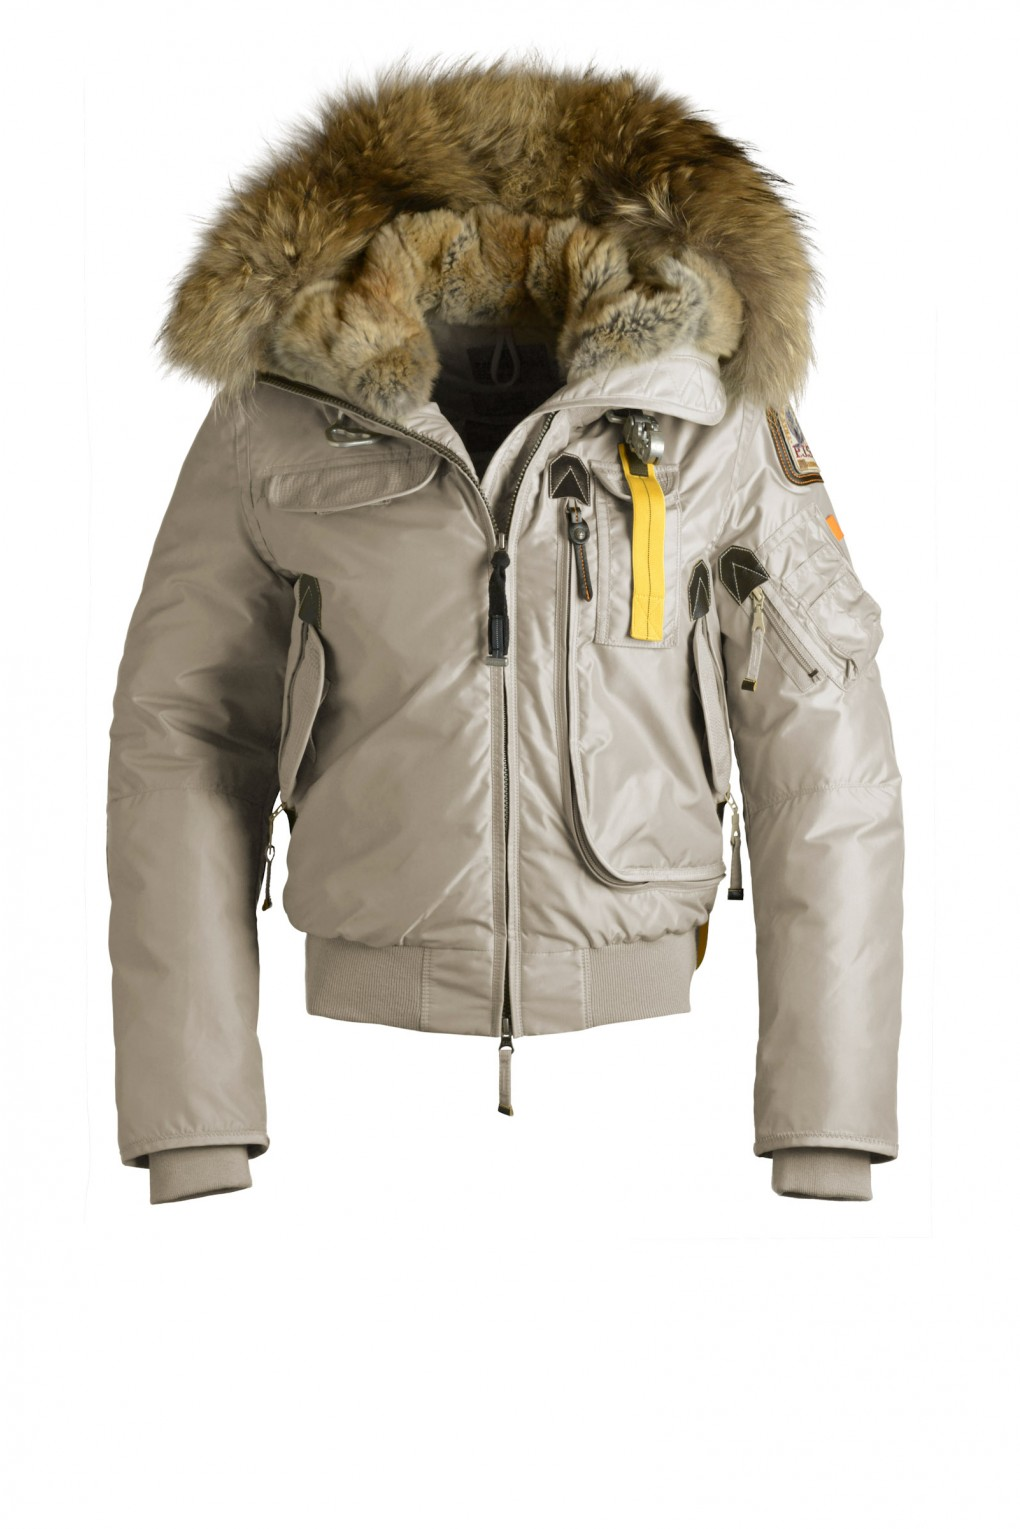 parajumpers GOBI woman outerwear Cappuccino